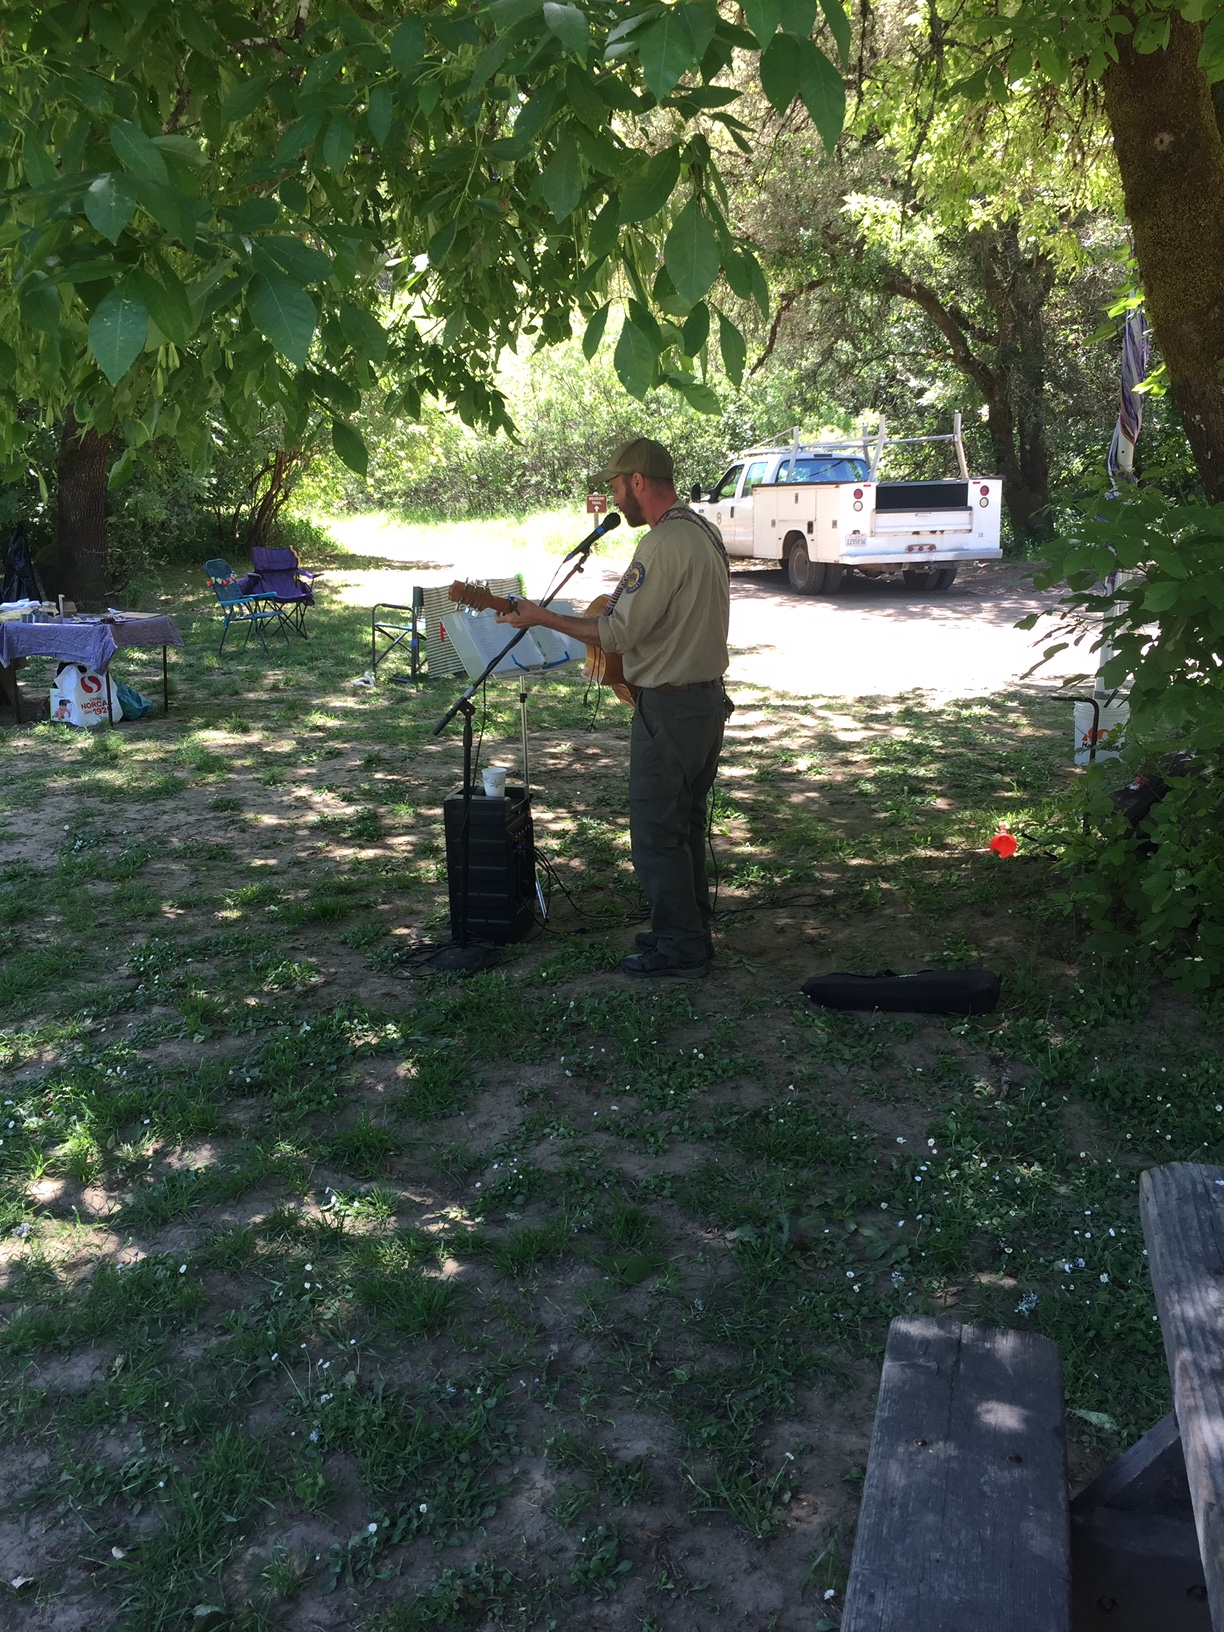 Interpretive Specialist Steve Jahelka filled the meadow with song